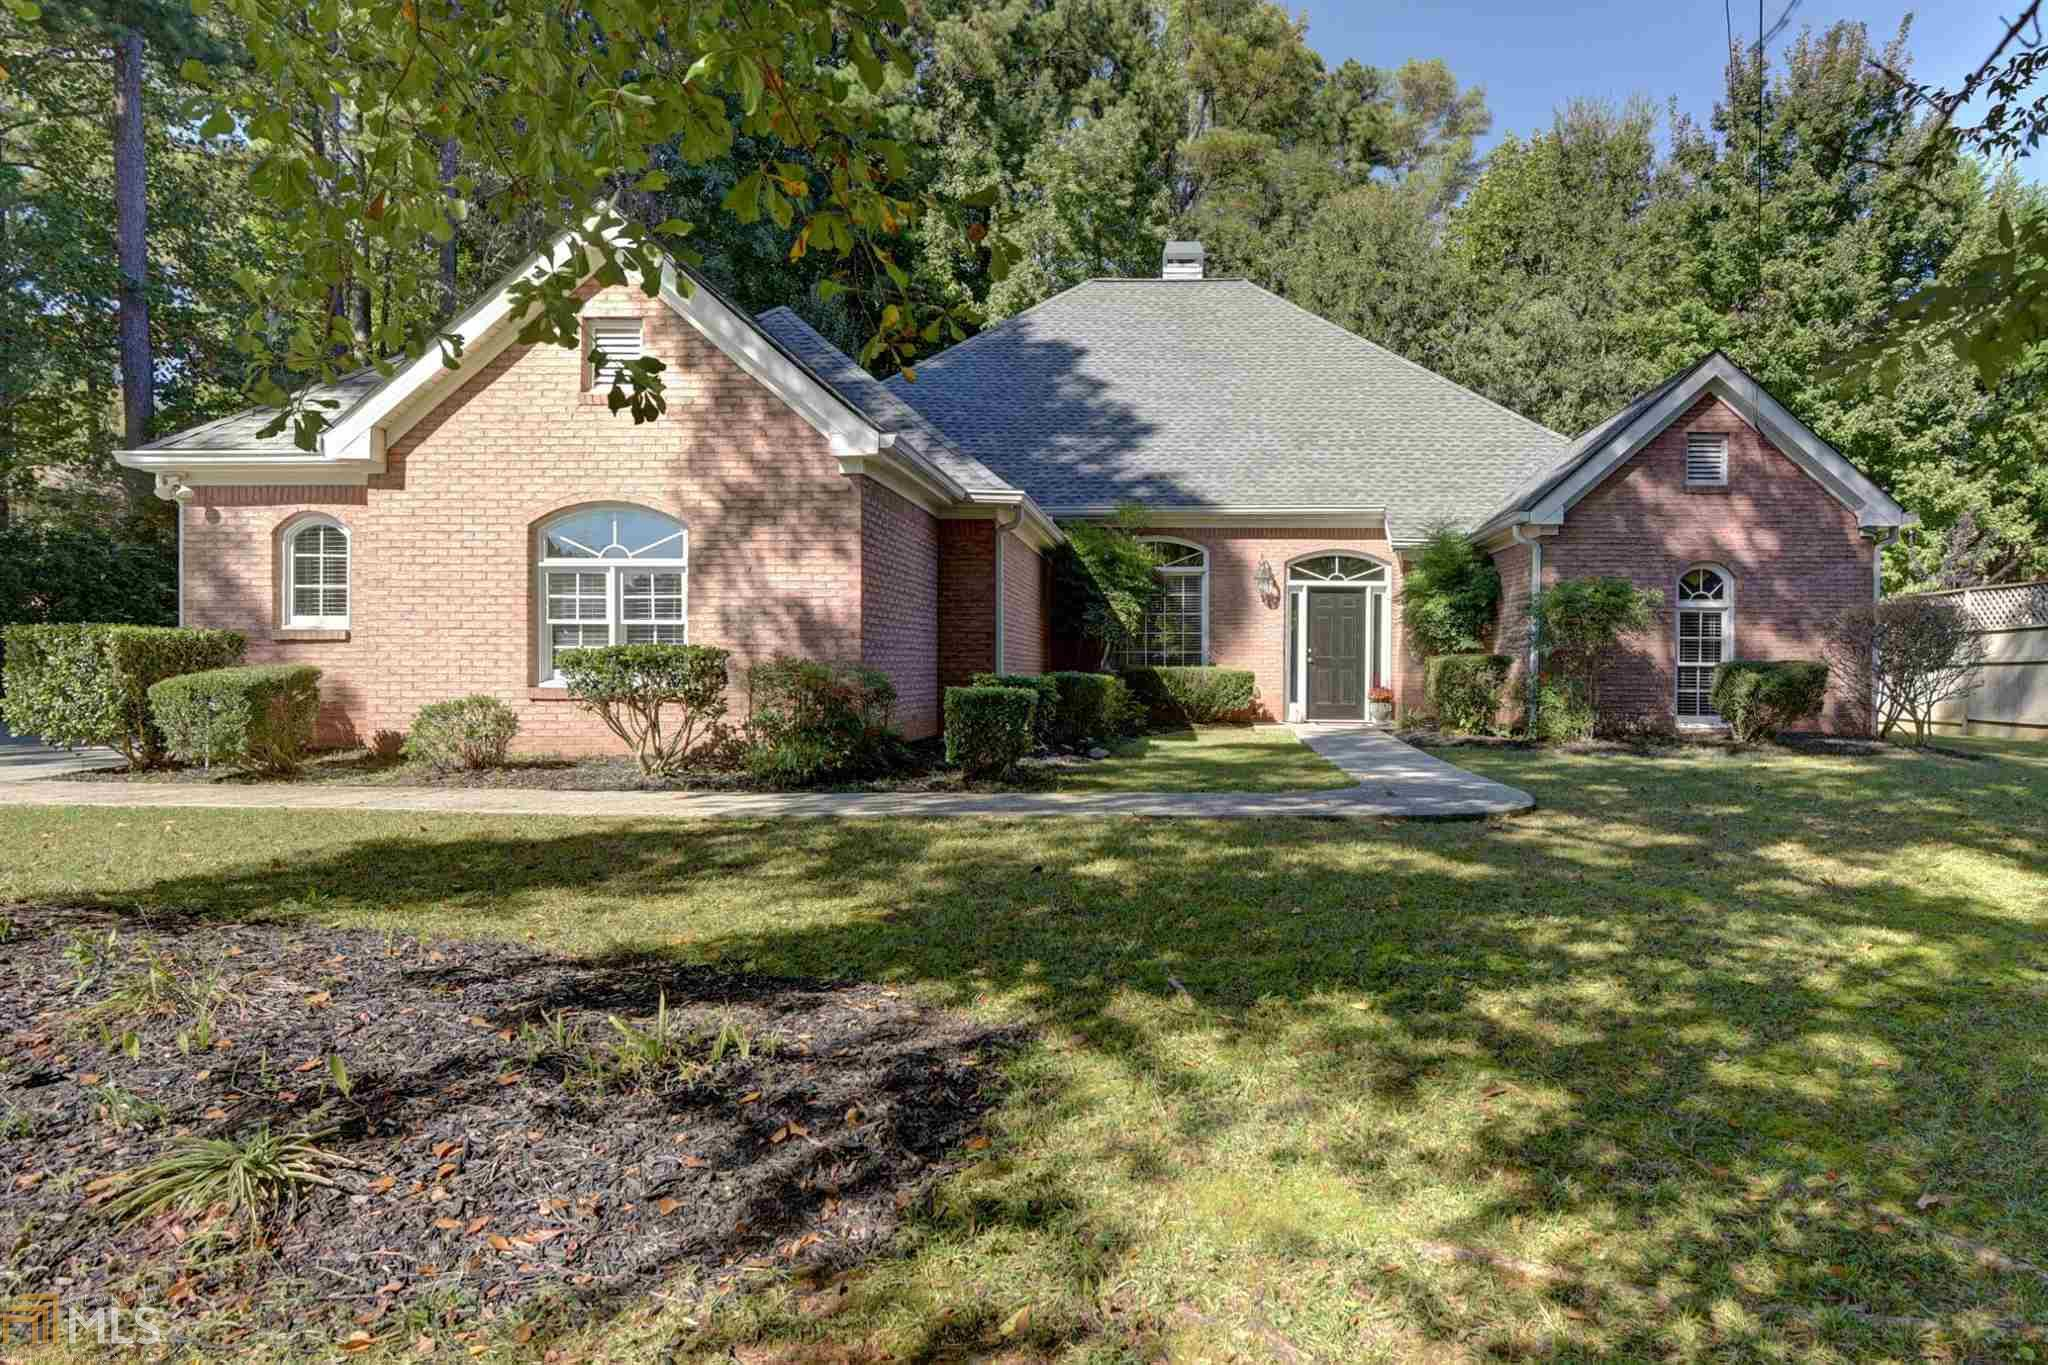 Image for property 2735 Sewell Mill Rd, Marietta, GA 30062